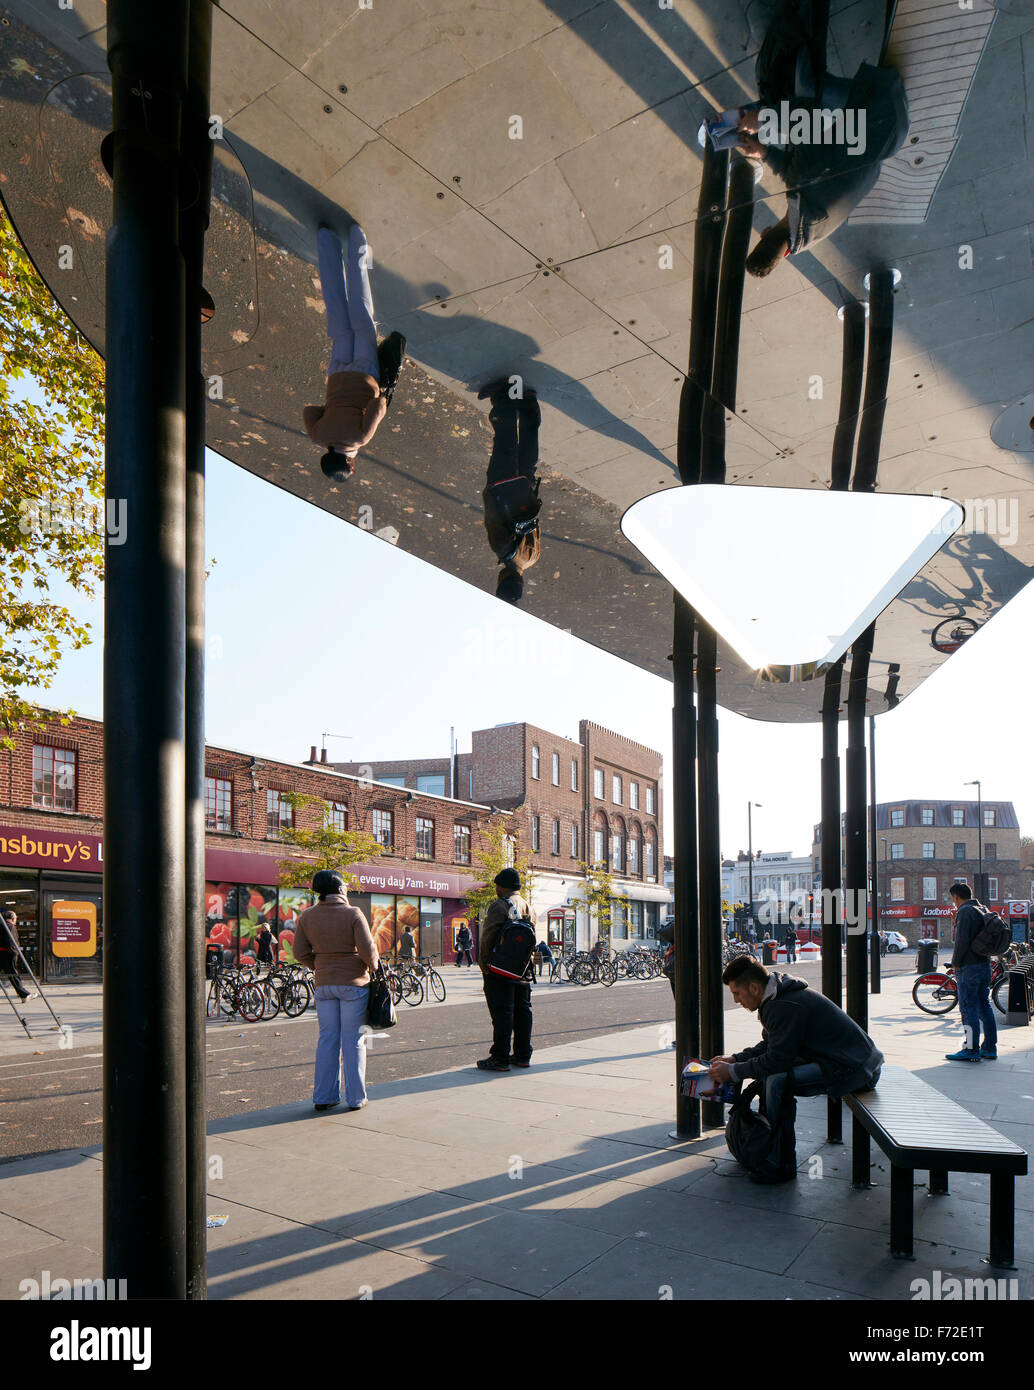 Bus shelter with reflective soffit. Binfield Road Bus Shelter, Stockwell Framework Masterplan, London, United Kingdom. - Stock Image